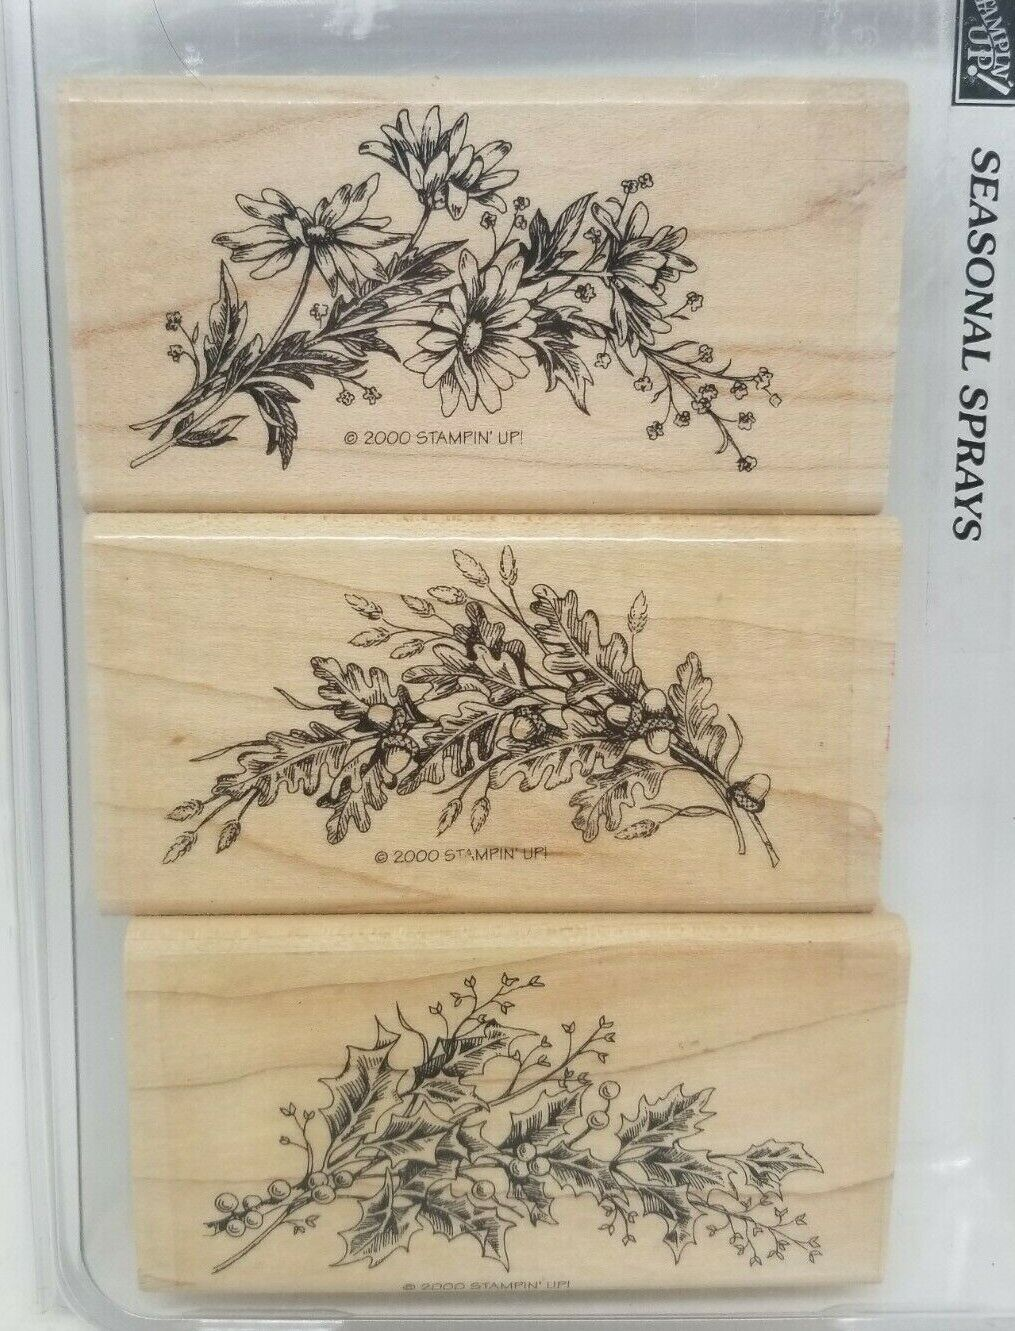 Stampin Up Seasonal Sprays Wood Mount Rubber Stamps Floral Holly Acorns Leaves - $14.99